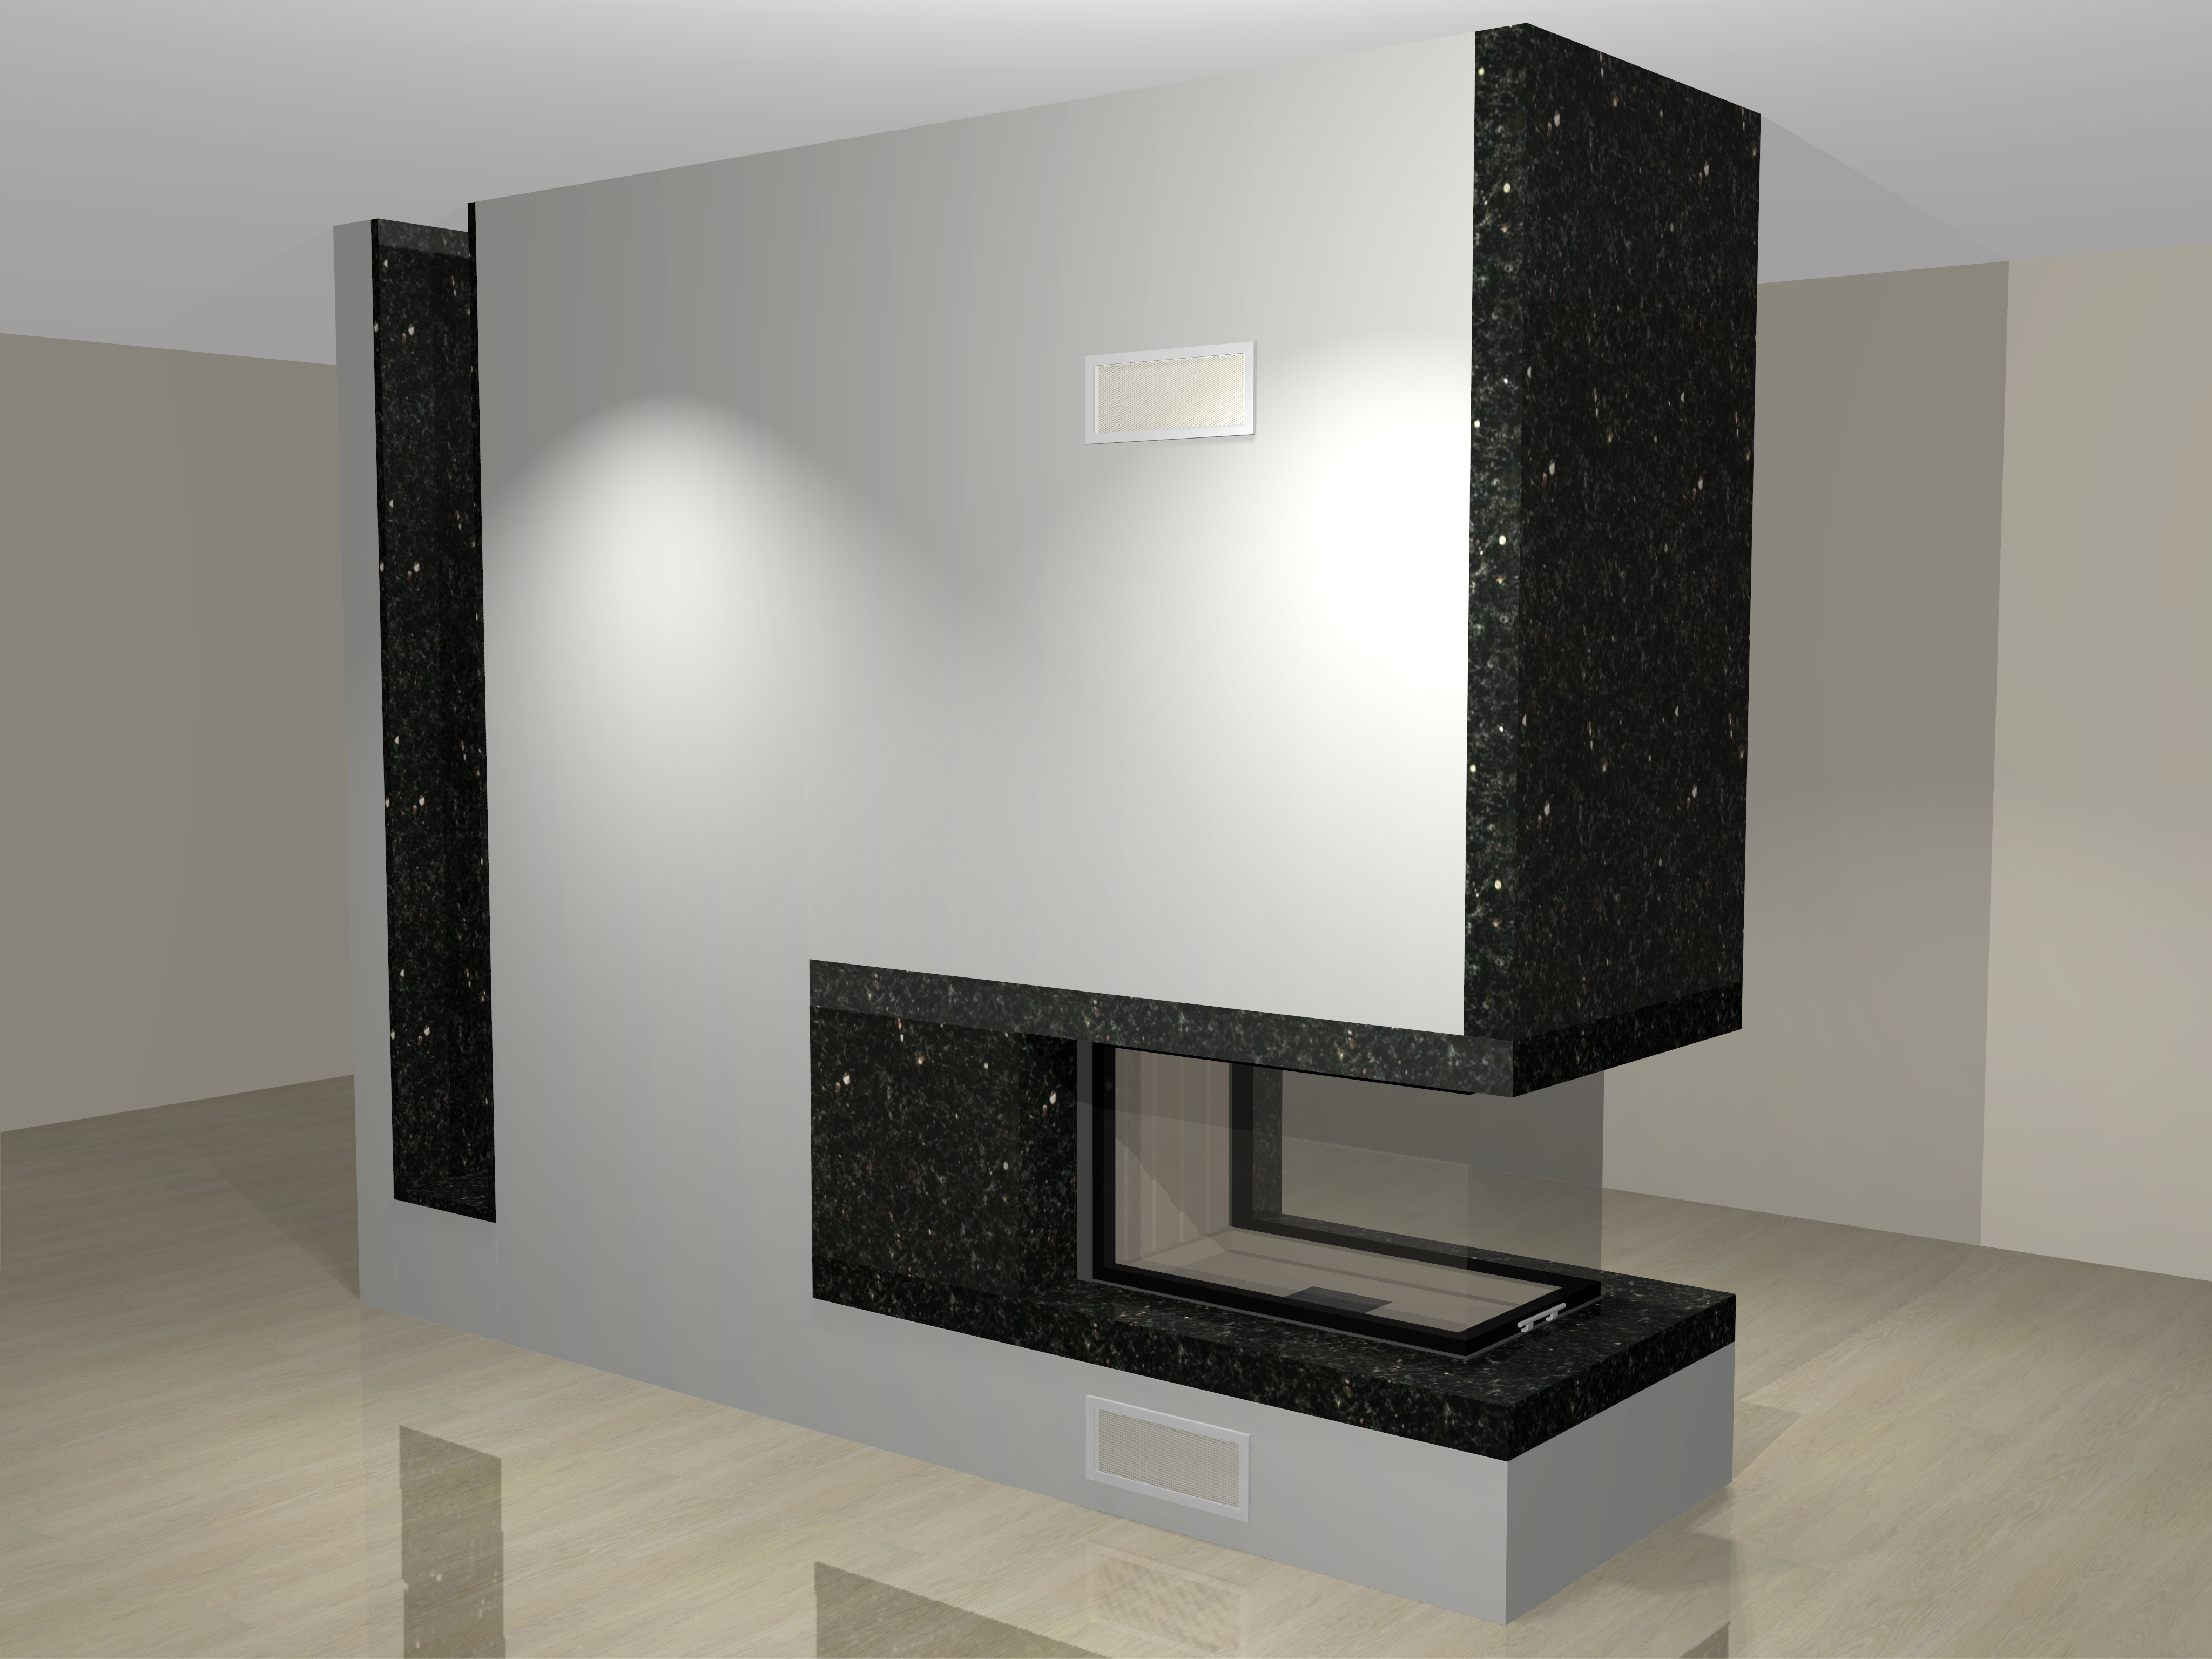 dreiseitiger kamin a 33 2 mit spartherm mit montage www. Black Bedroom Furniture Sets. Home Design Ideas